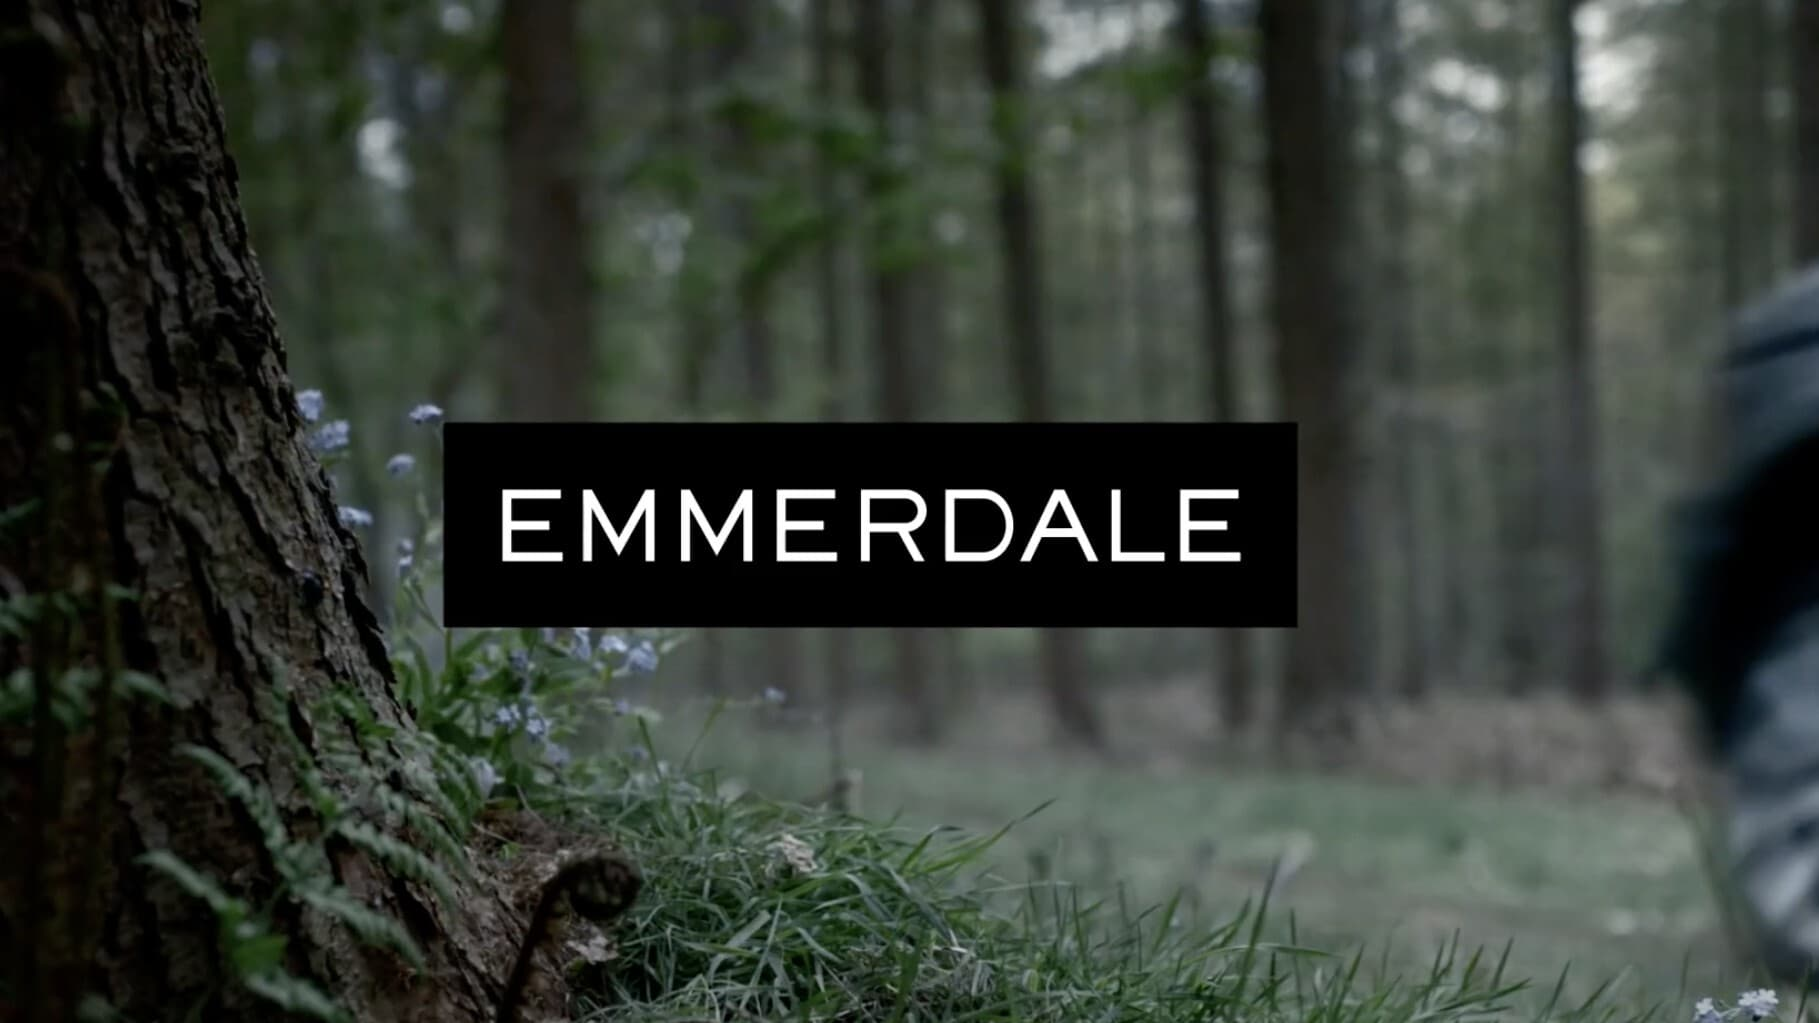 Emmerdale - Season 36 Episode 160 : July 12, 2007